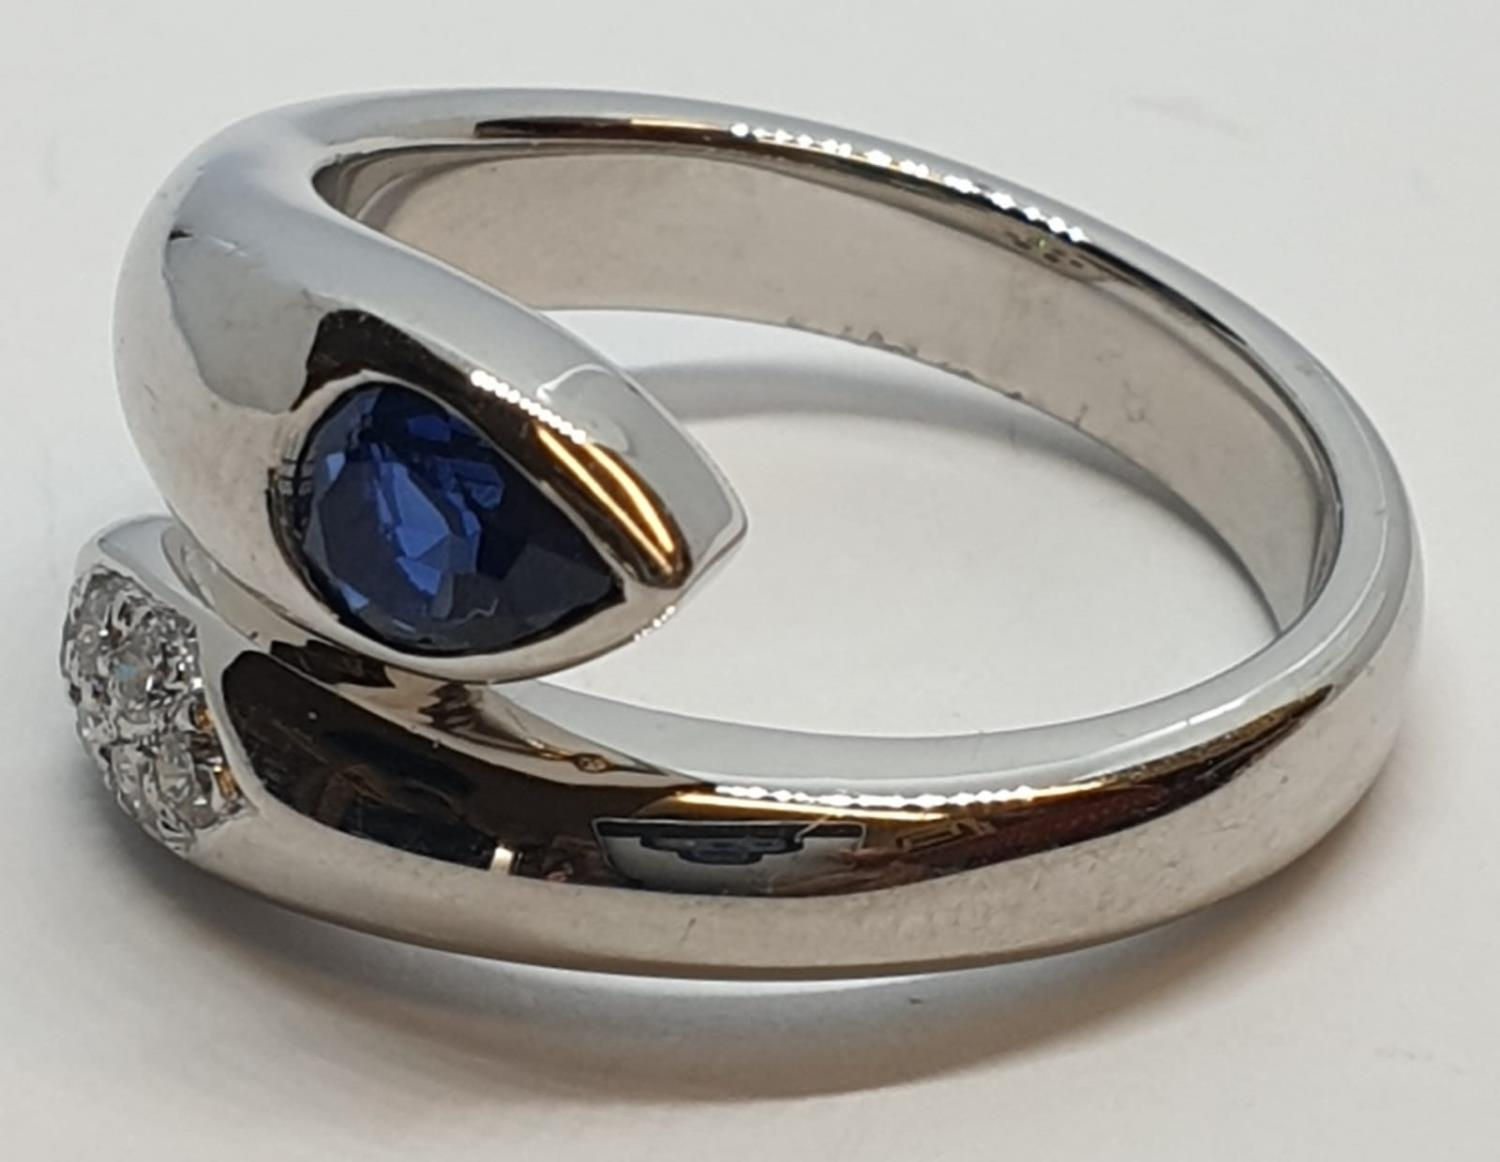 Platinum cross over ring with 0.60ct Thai sapphire and 0.30ct encrusted diamonds, weight 13.7g and - Image 4 of 10